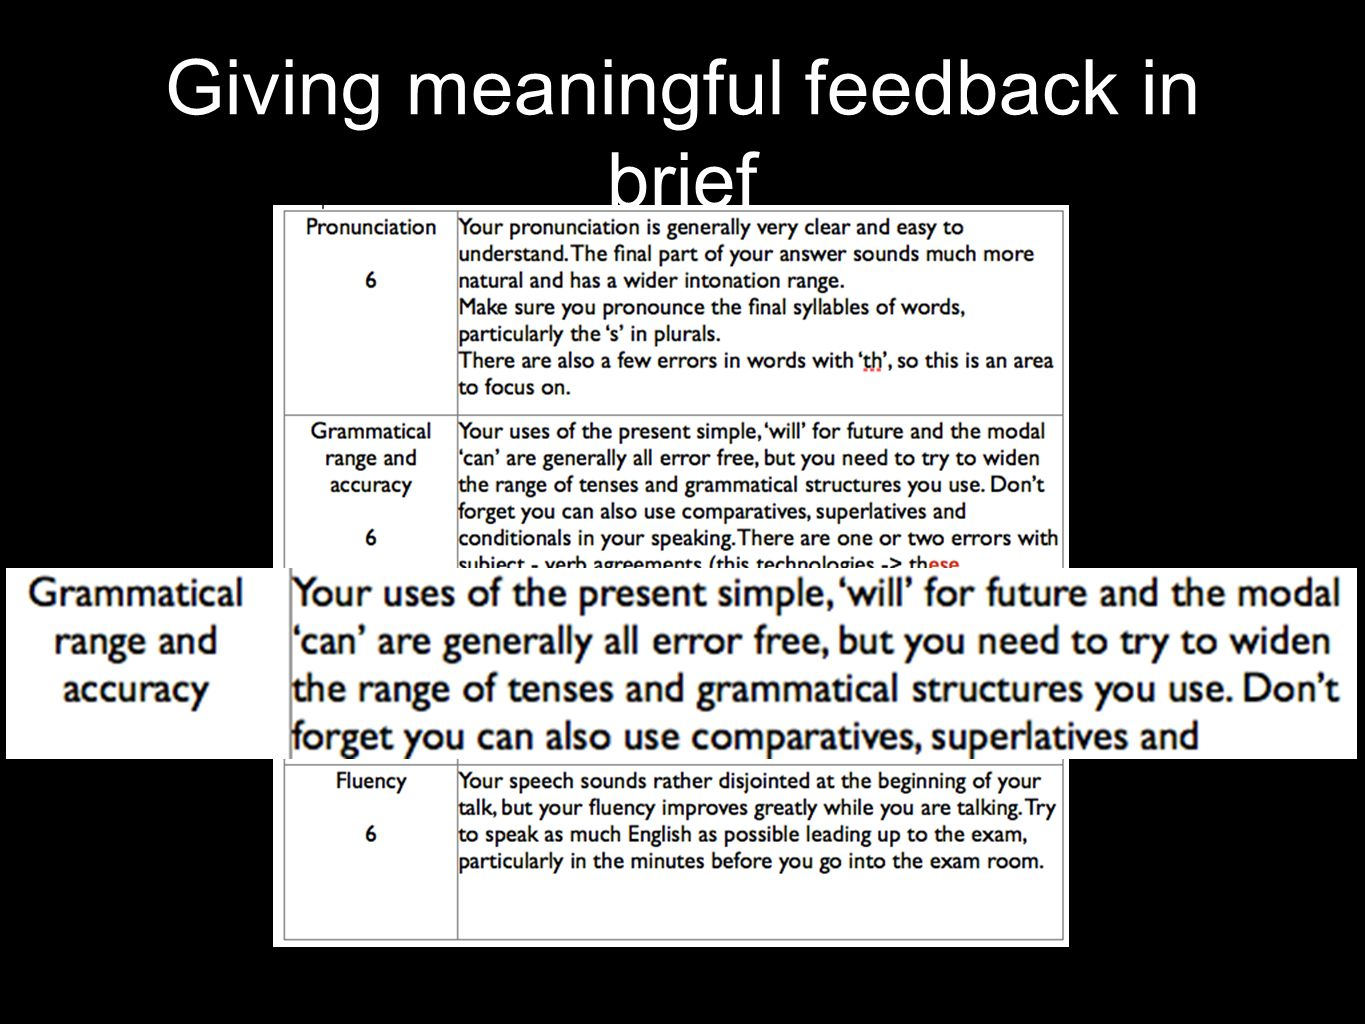 Giving meaningful feedback in brief